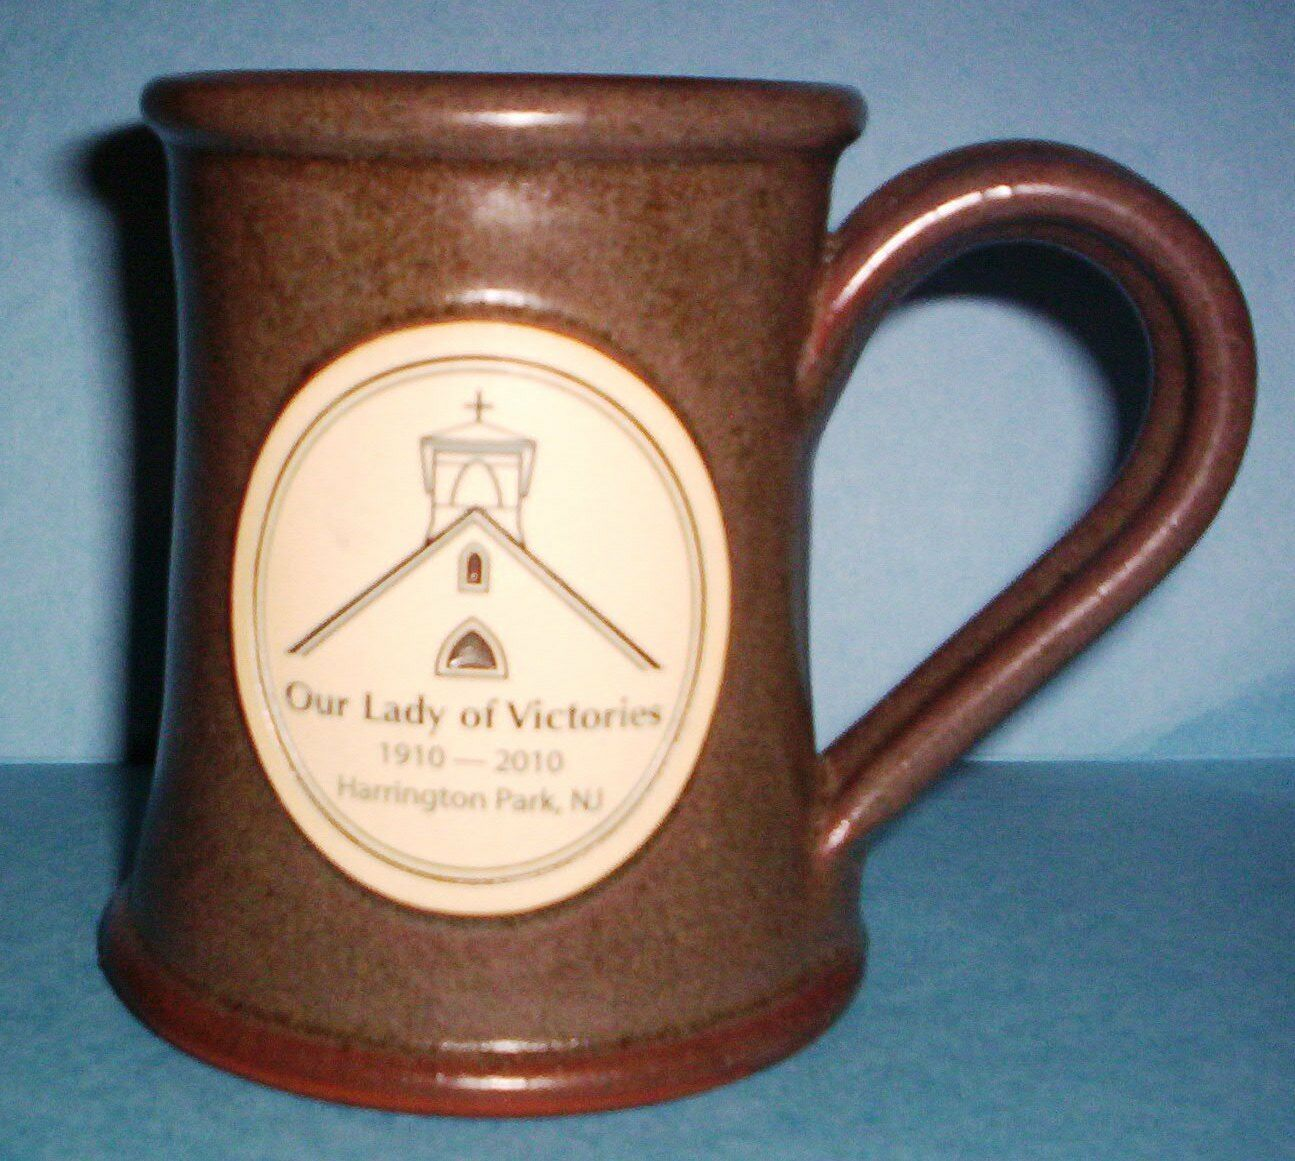 Primary image for DENEEN POTTERY MUG OUR LADY OF VICTORIES (1910-2010) HARRINGTON PARK, NJ